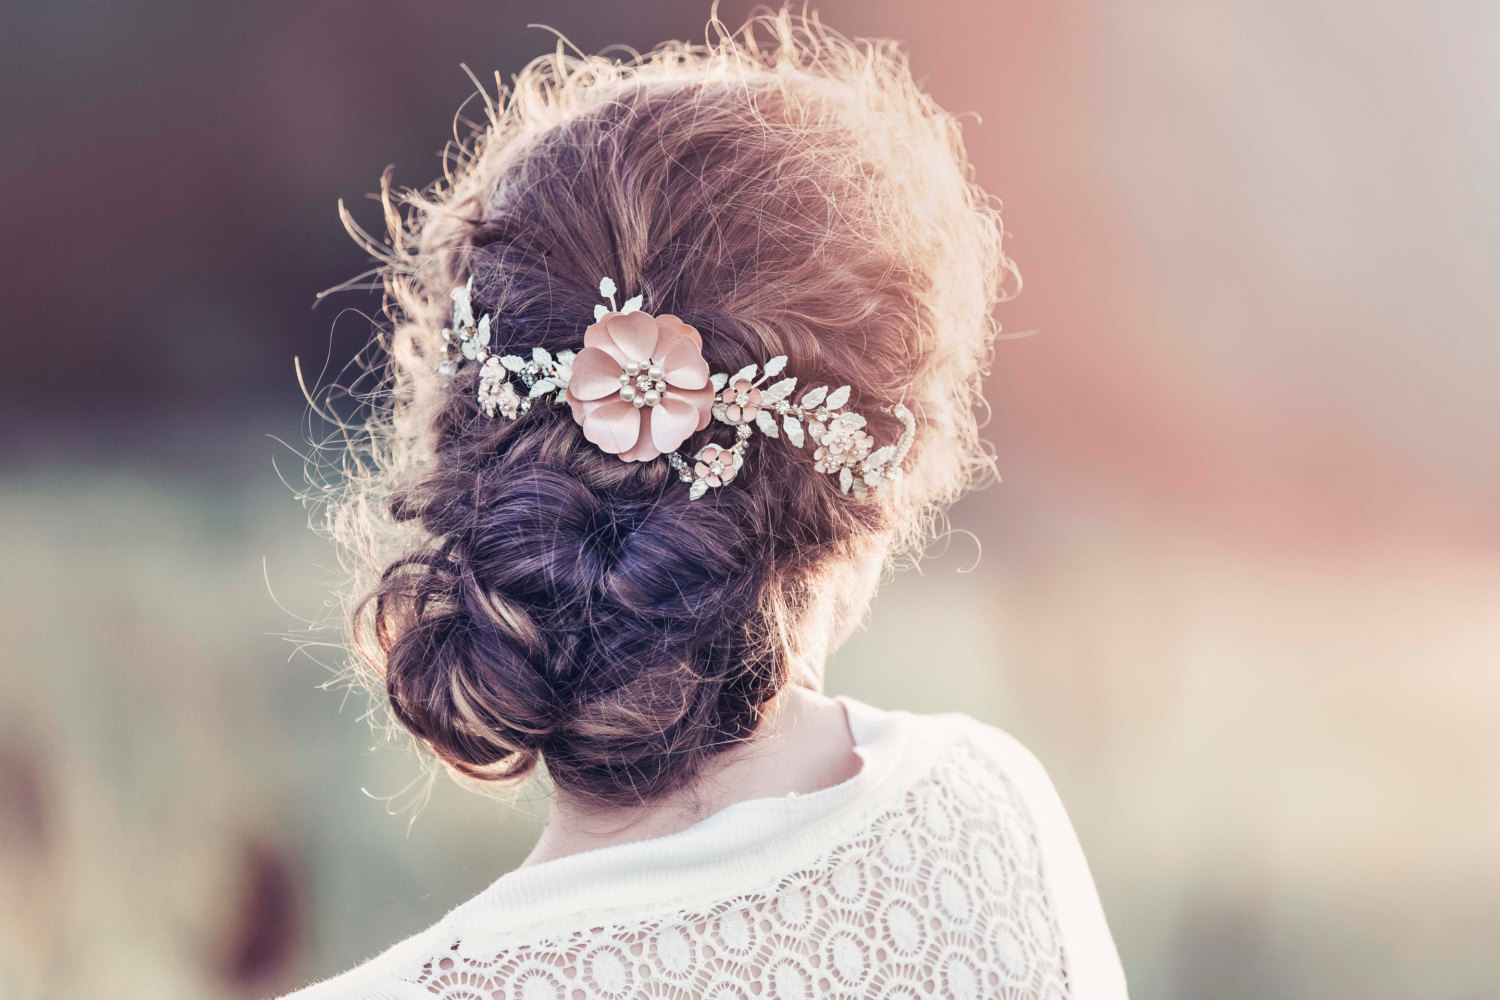 Bridal hair vines for weddings | by Gadegaard Design | photo by Tina Liv | https://emmalinebride.com/bride/bridal-hair-vines-for-weddings/